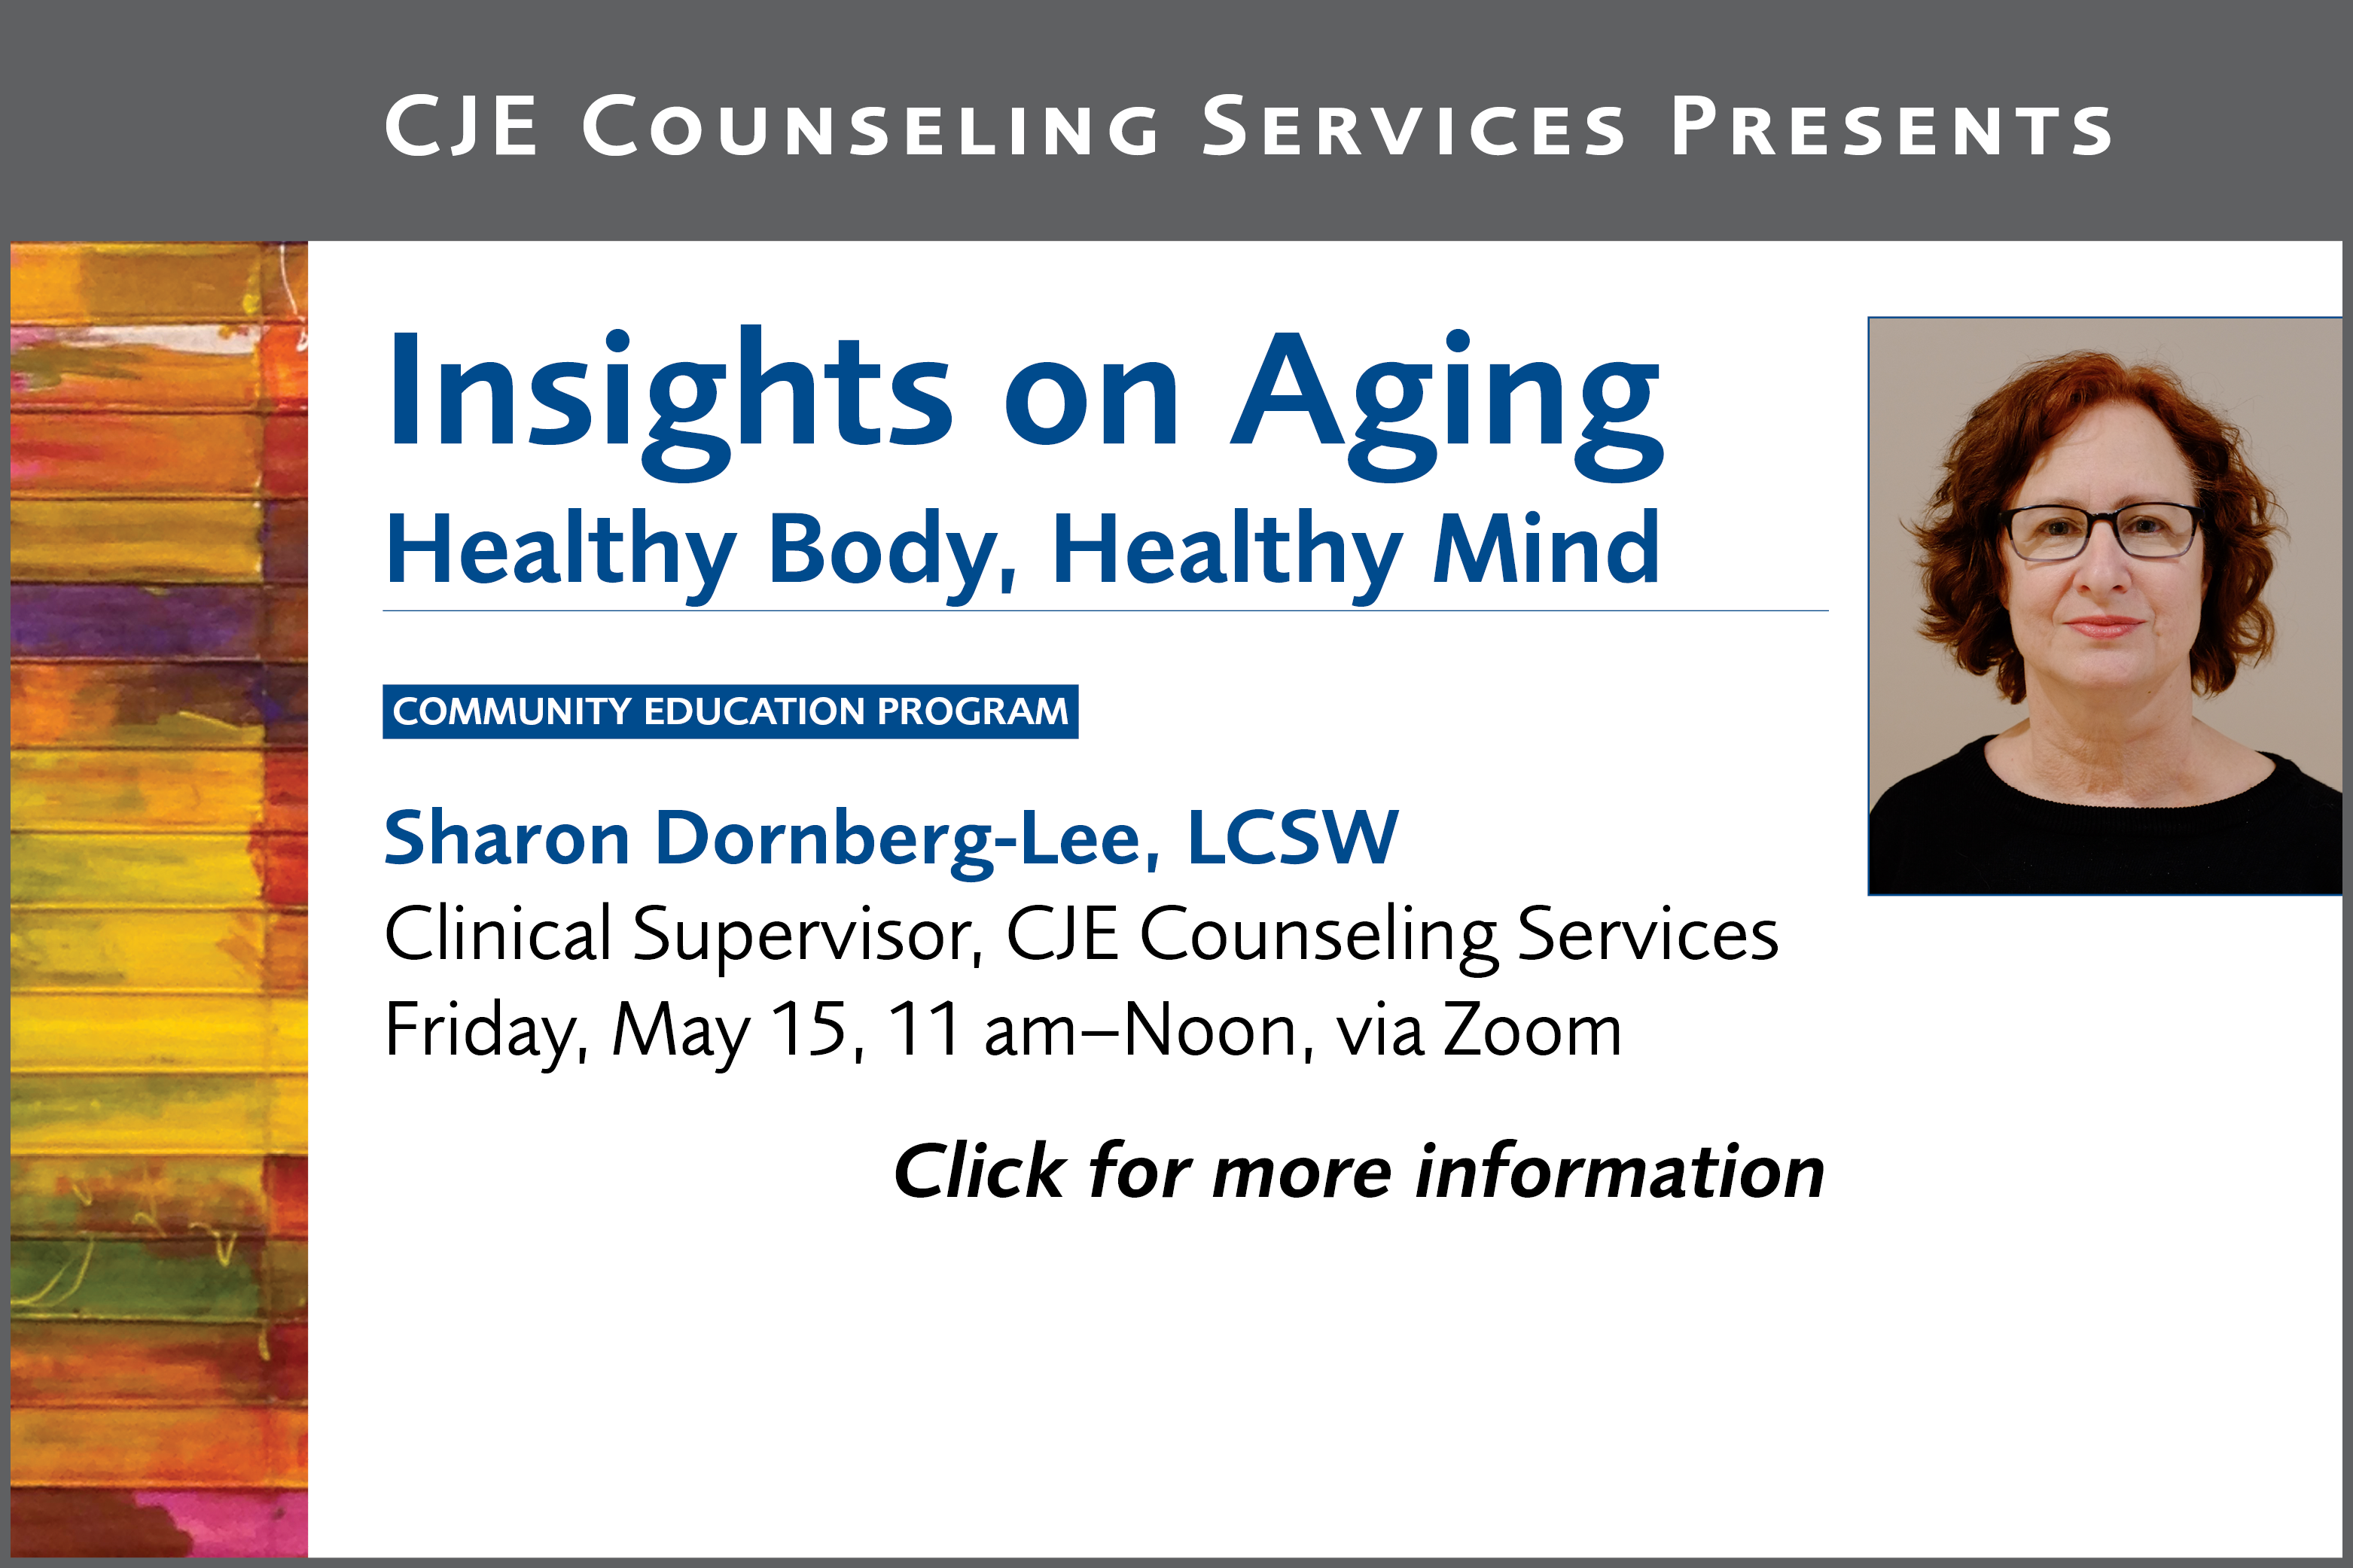 Insights on Aging